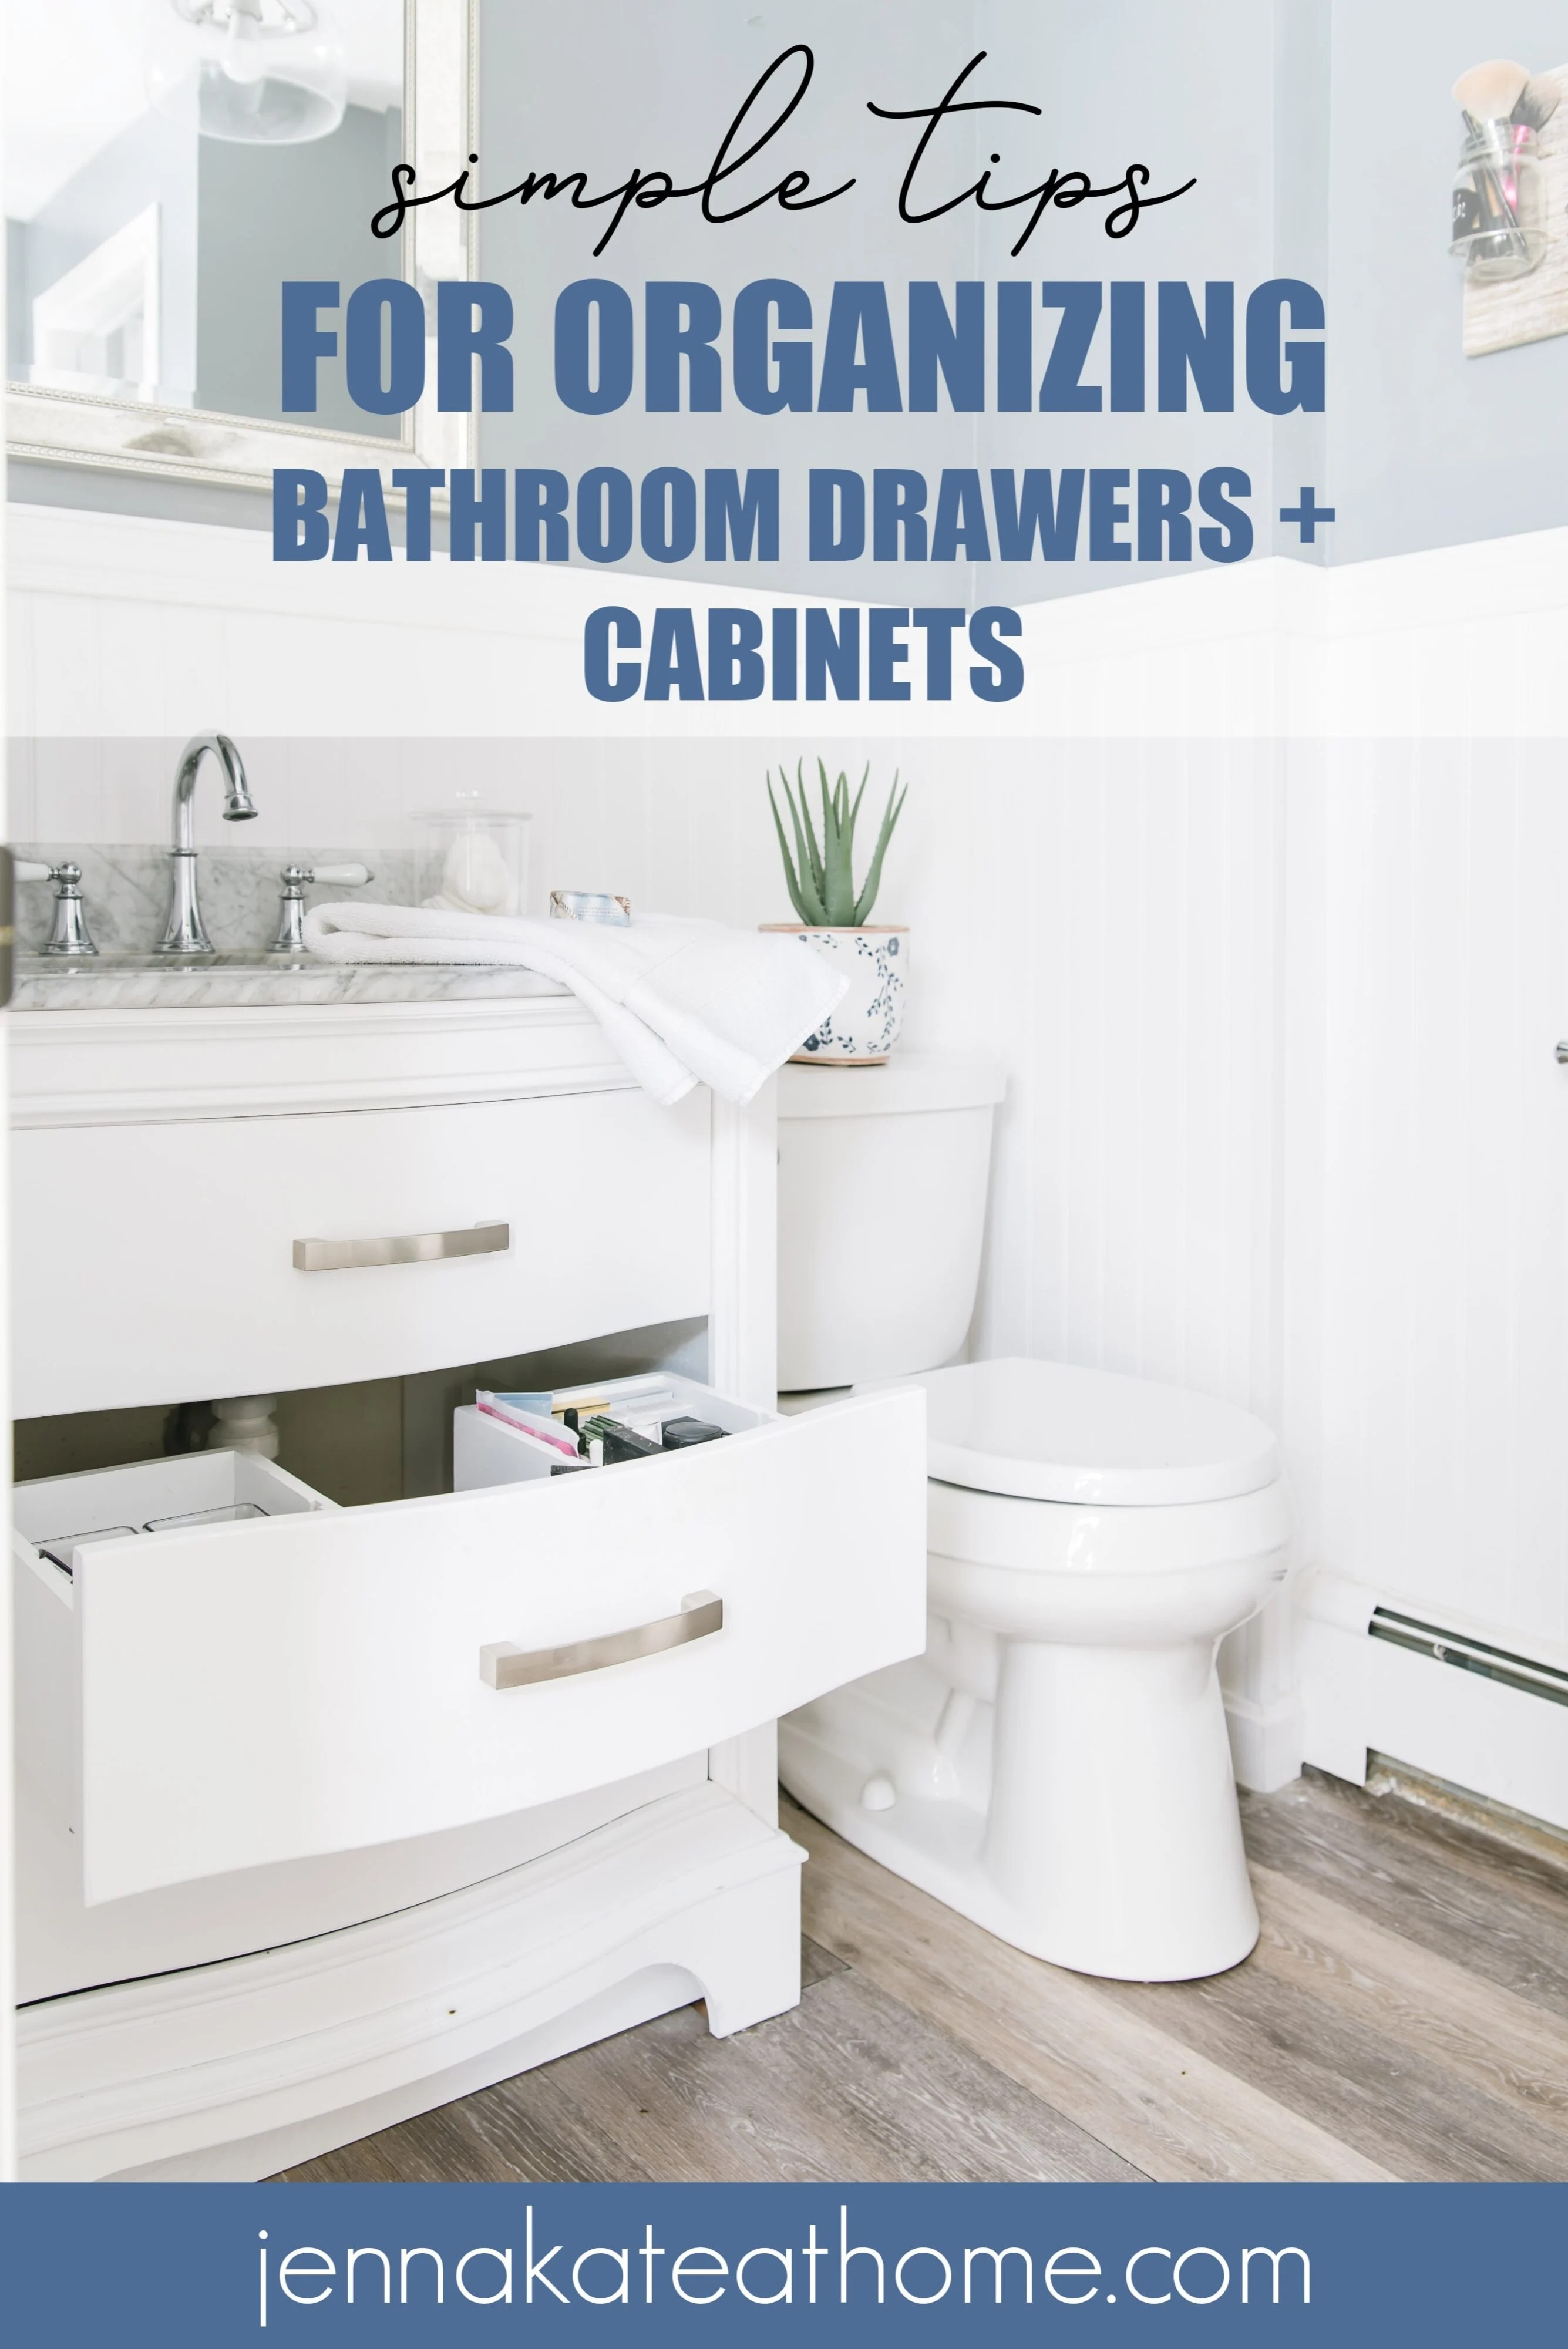 Simple tips for organizing bathroom drawers and cabinets Pinterest